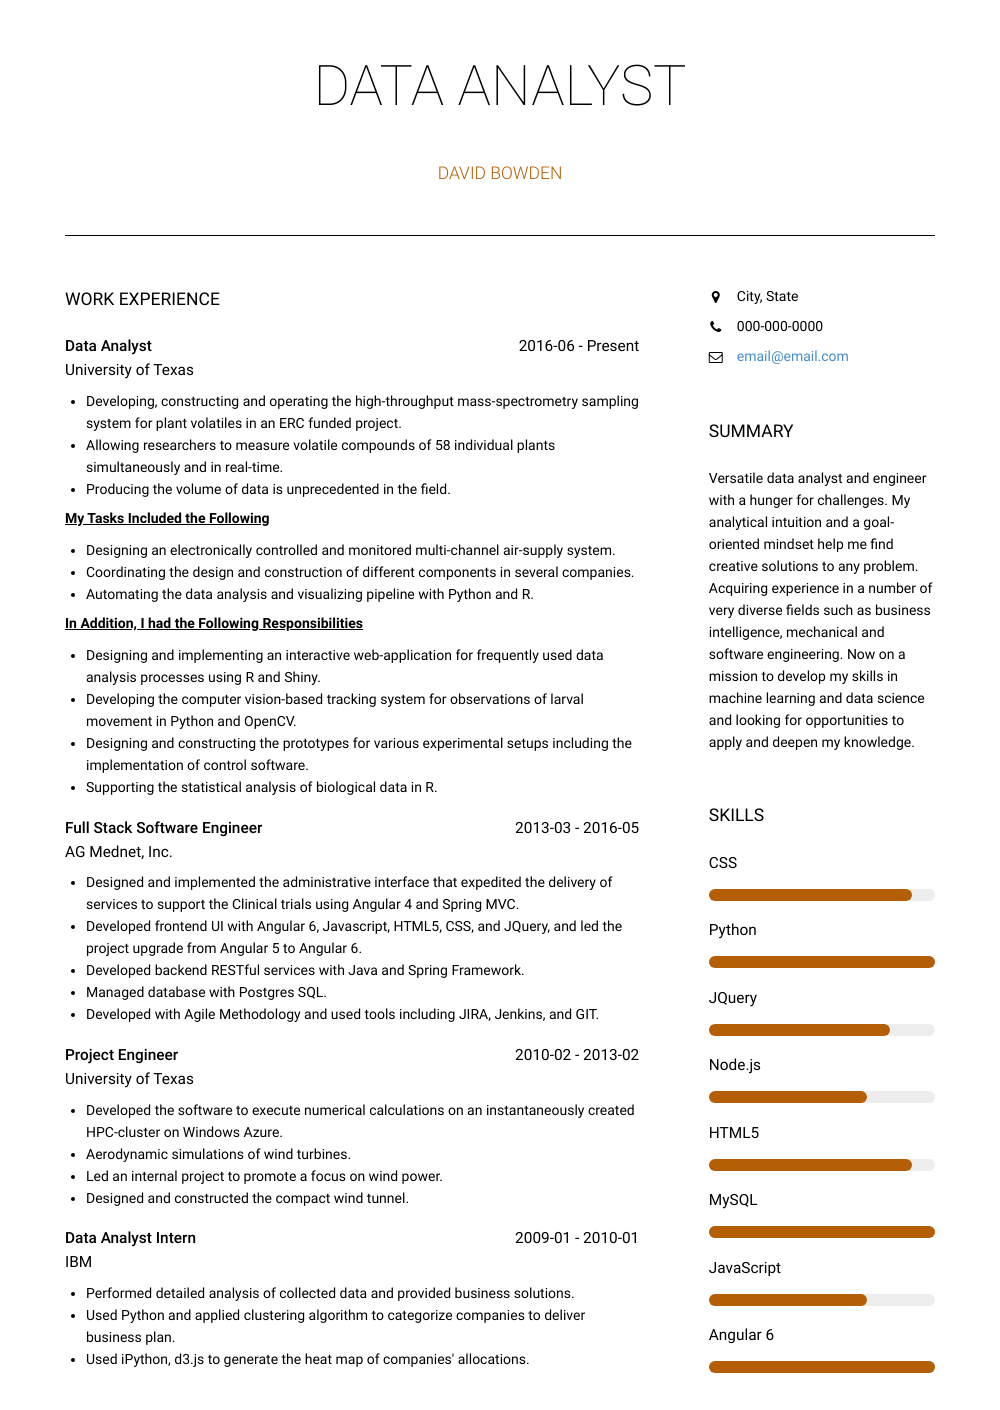 Data Analyst And Prototype Engineer Resume Sample and Template